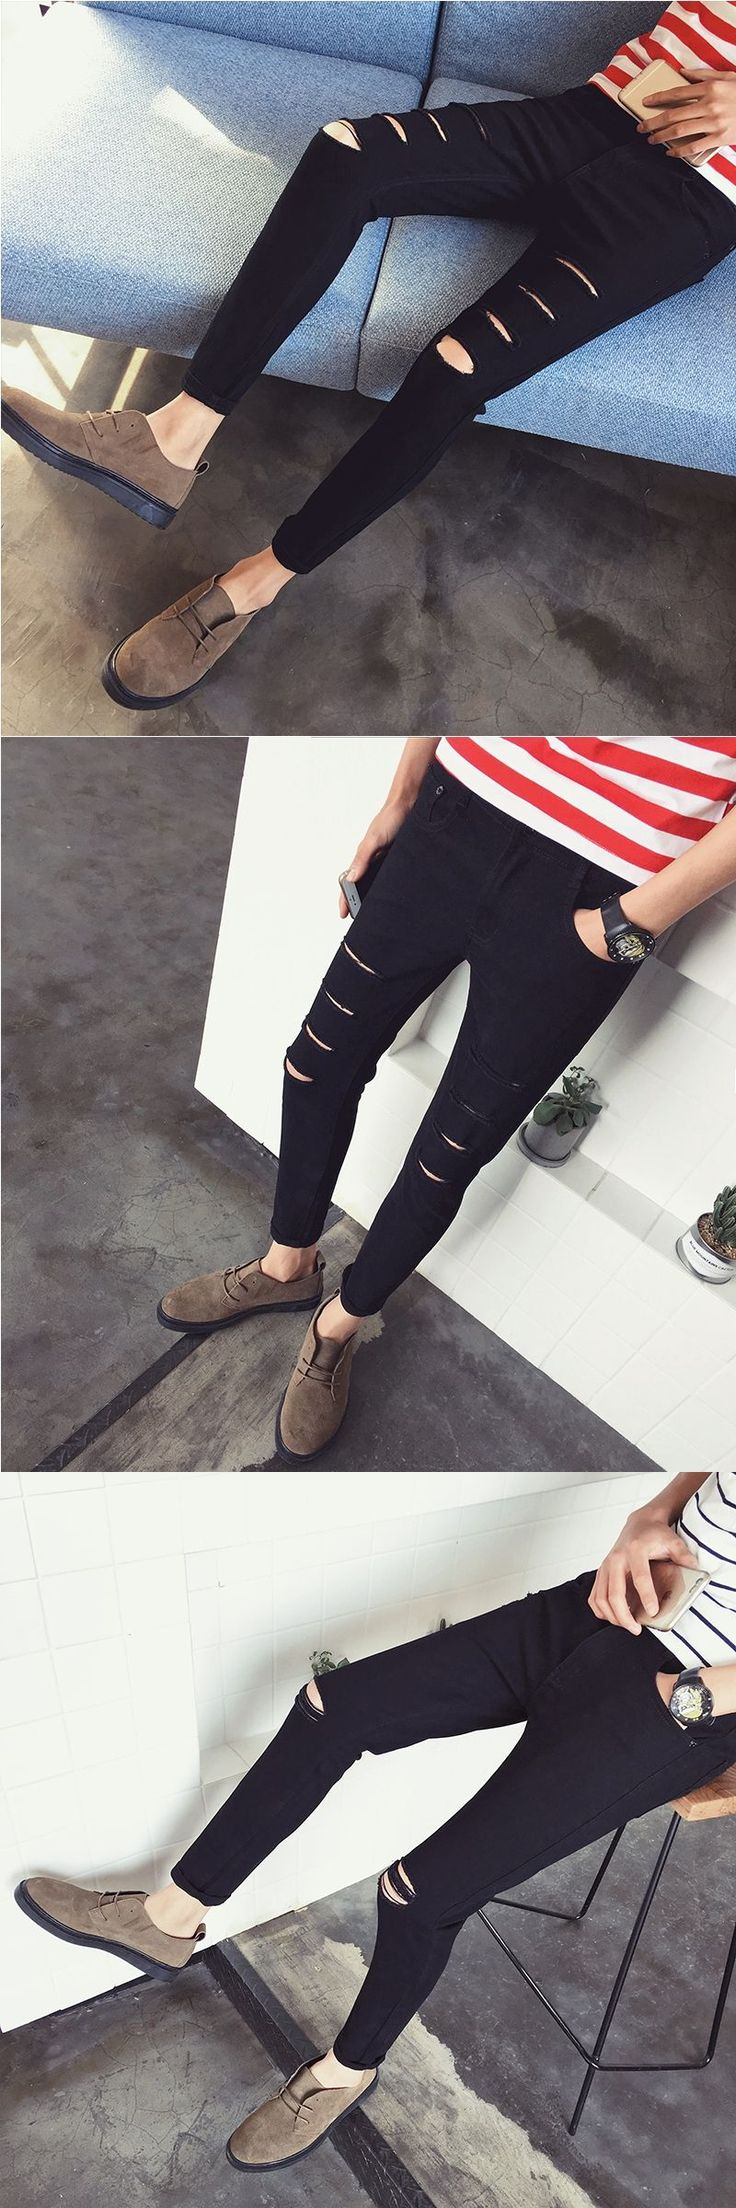 2017 New Men's White Jeans Fashion Design Slim Fit Casual Skinny Ripped Jeans For Men/Black Jeans